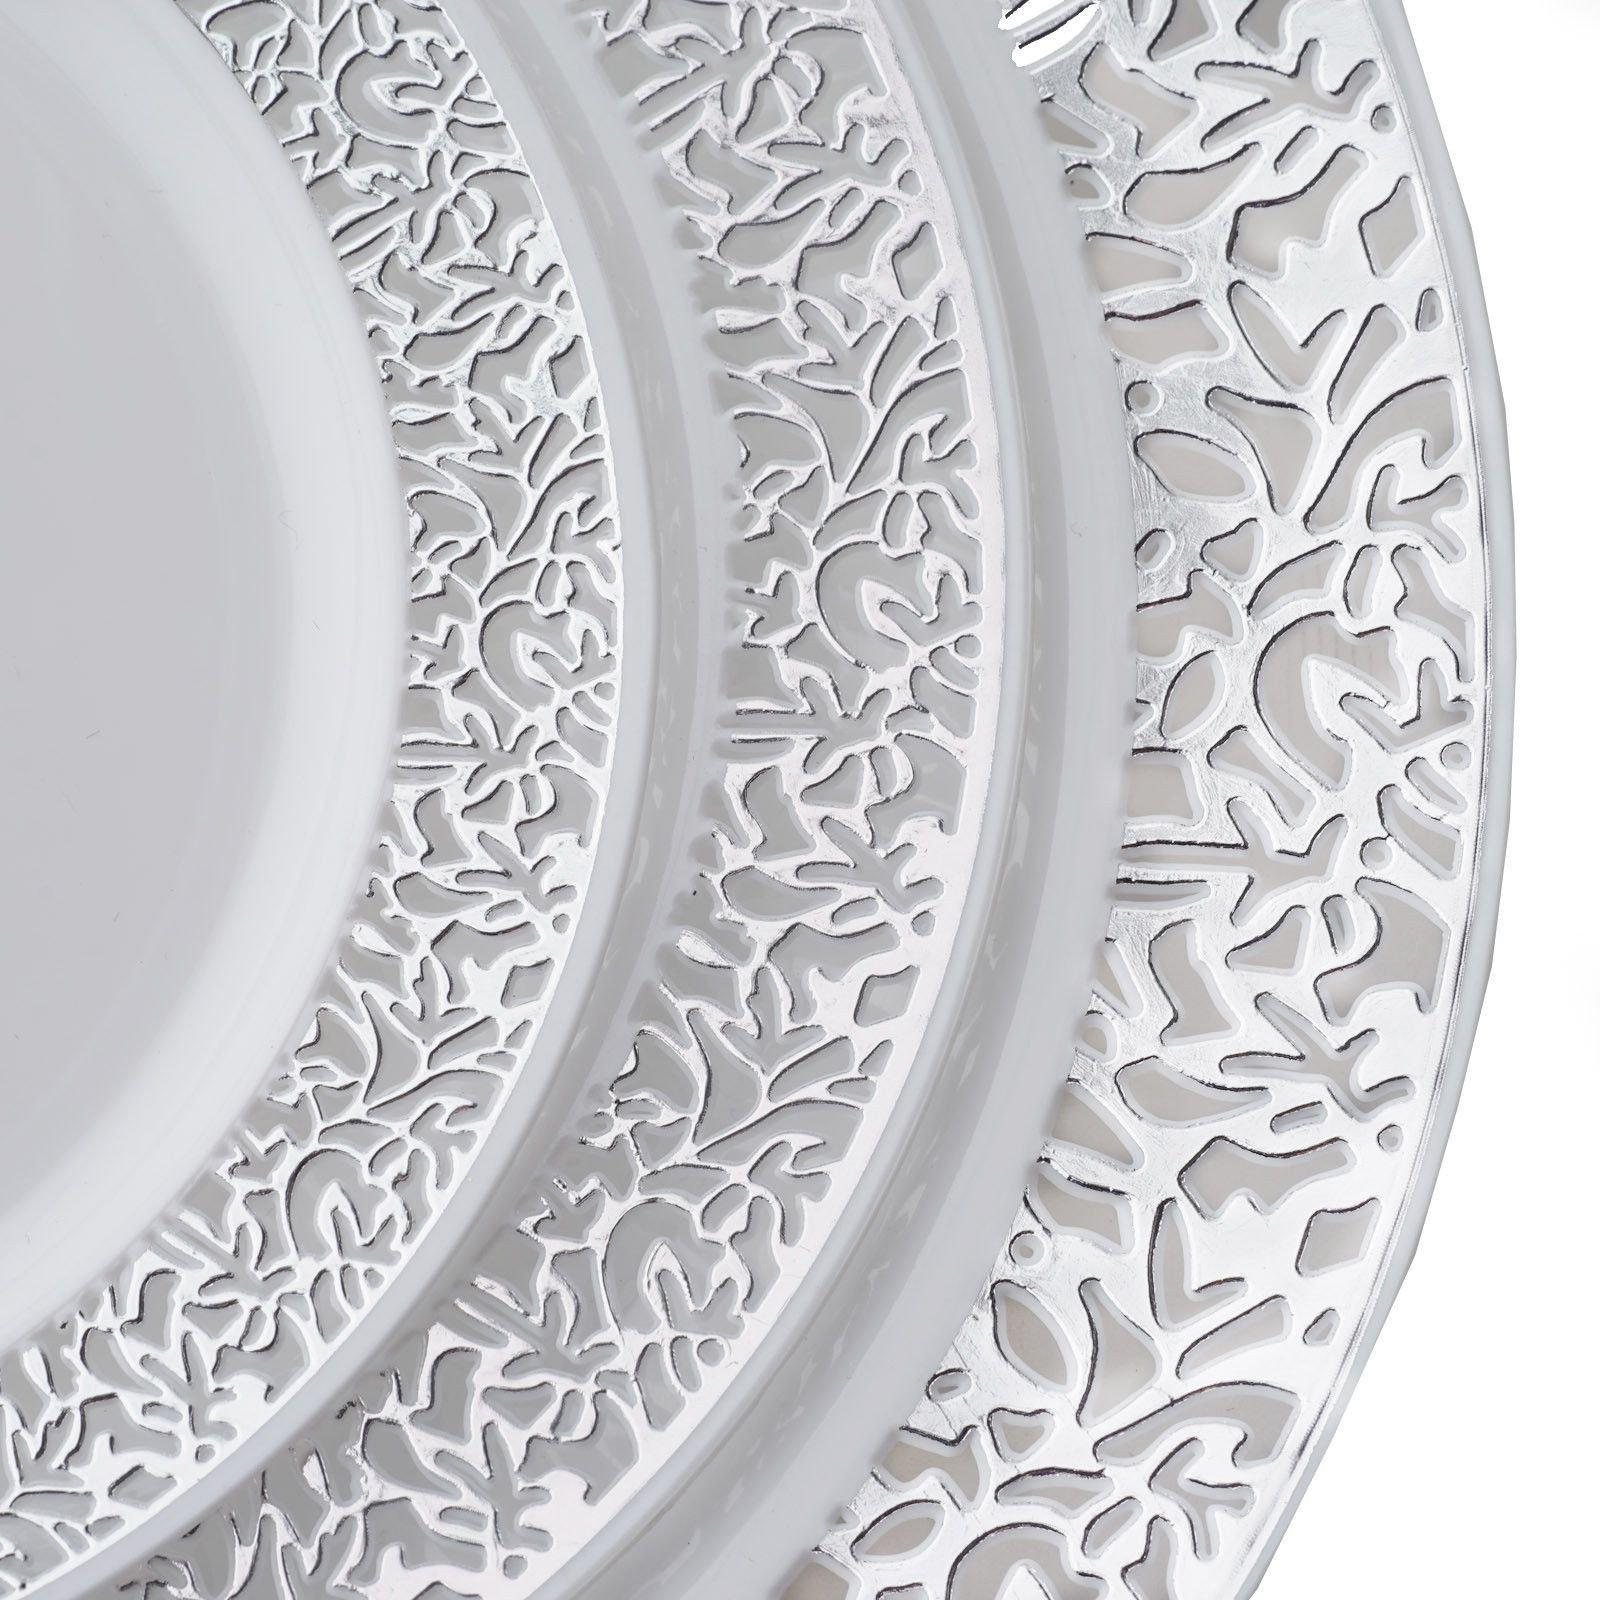 10 Pack - White with Silver Trimmed 9  Round Disposable Plate - Designer Lace collection ...  sc 1 st  Tablecloths Factory & 10 Pack 9